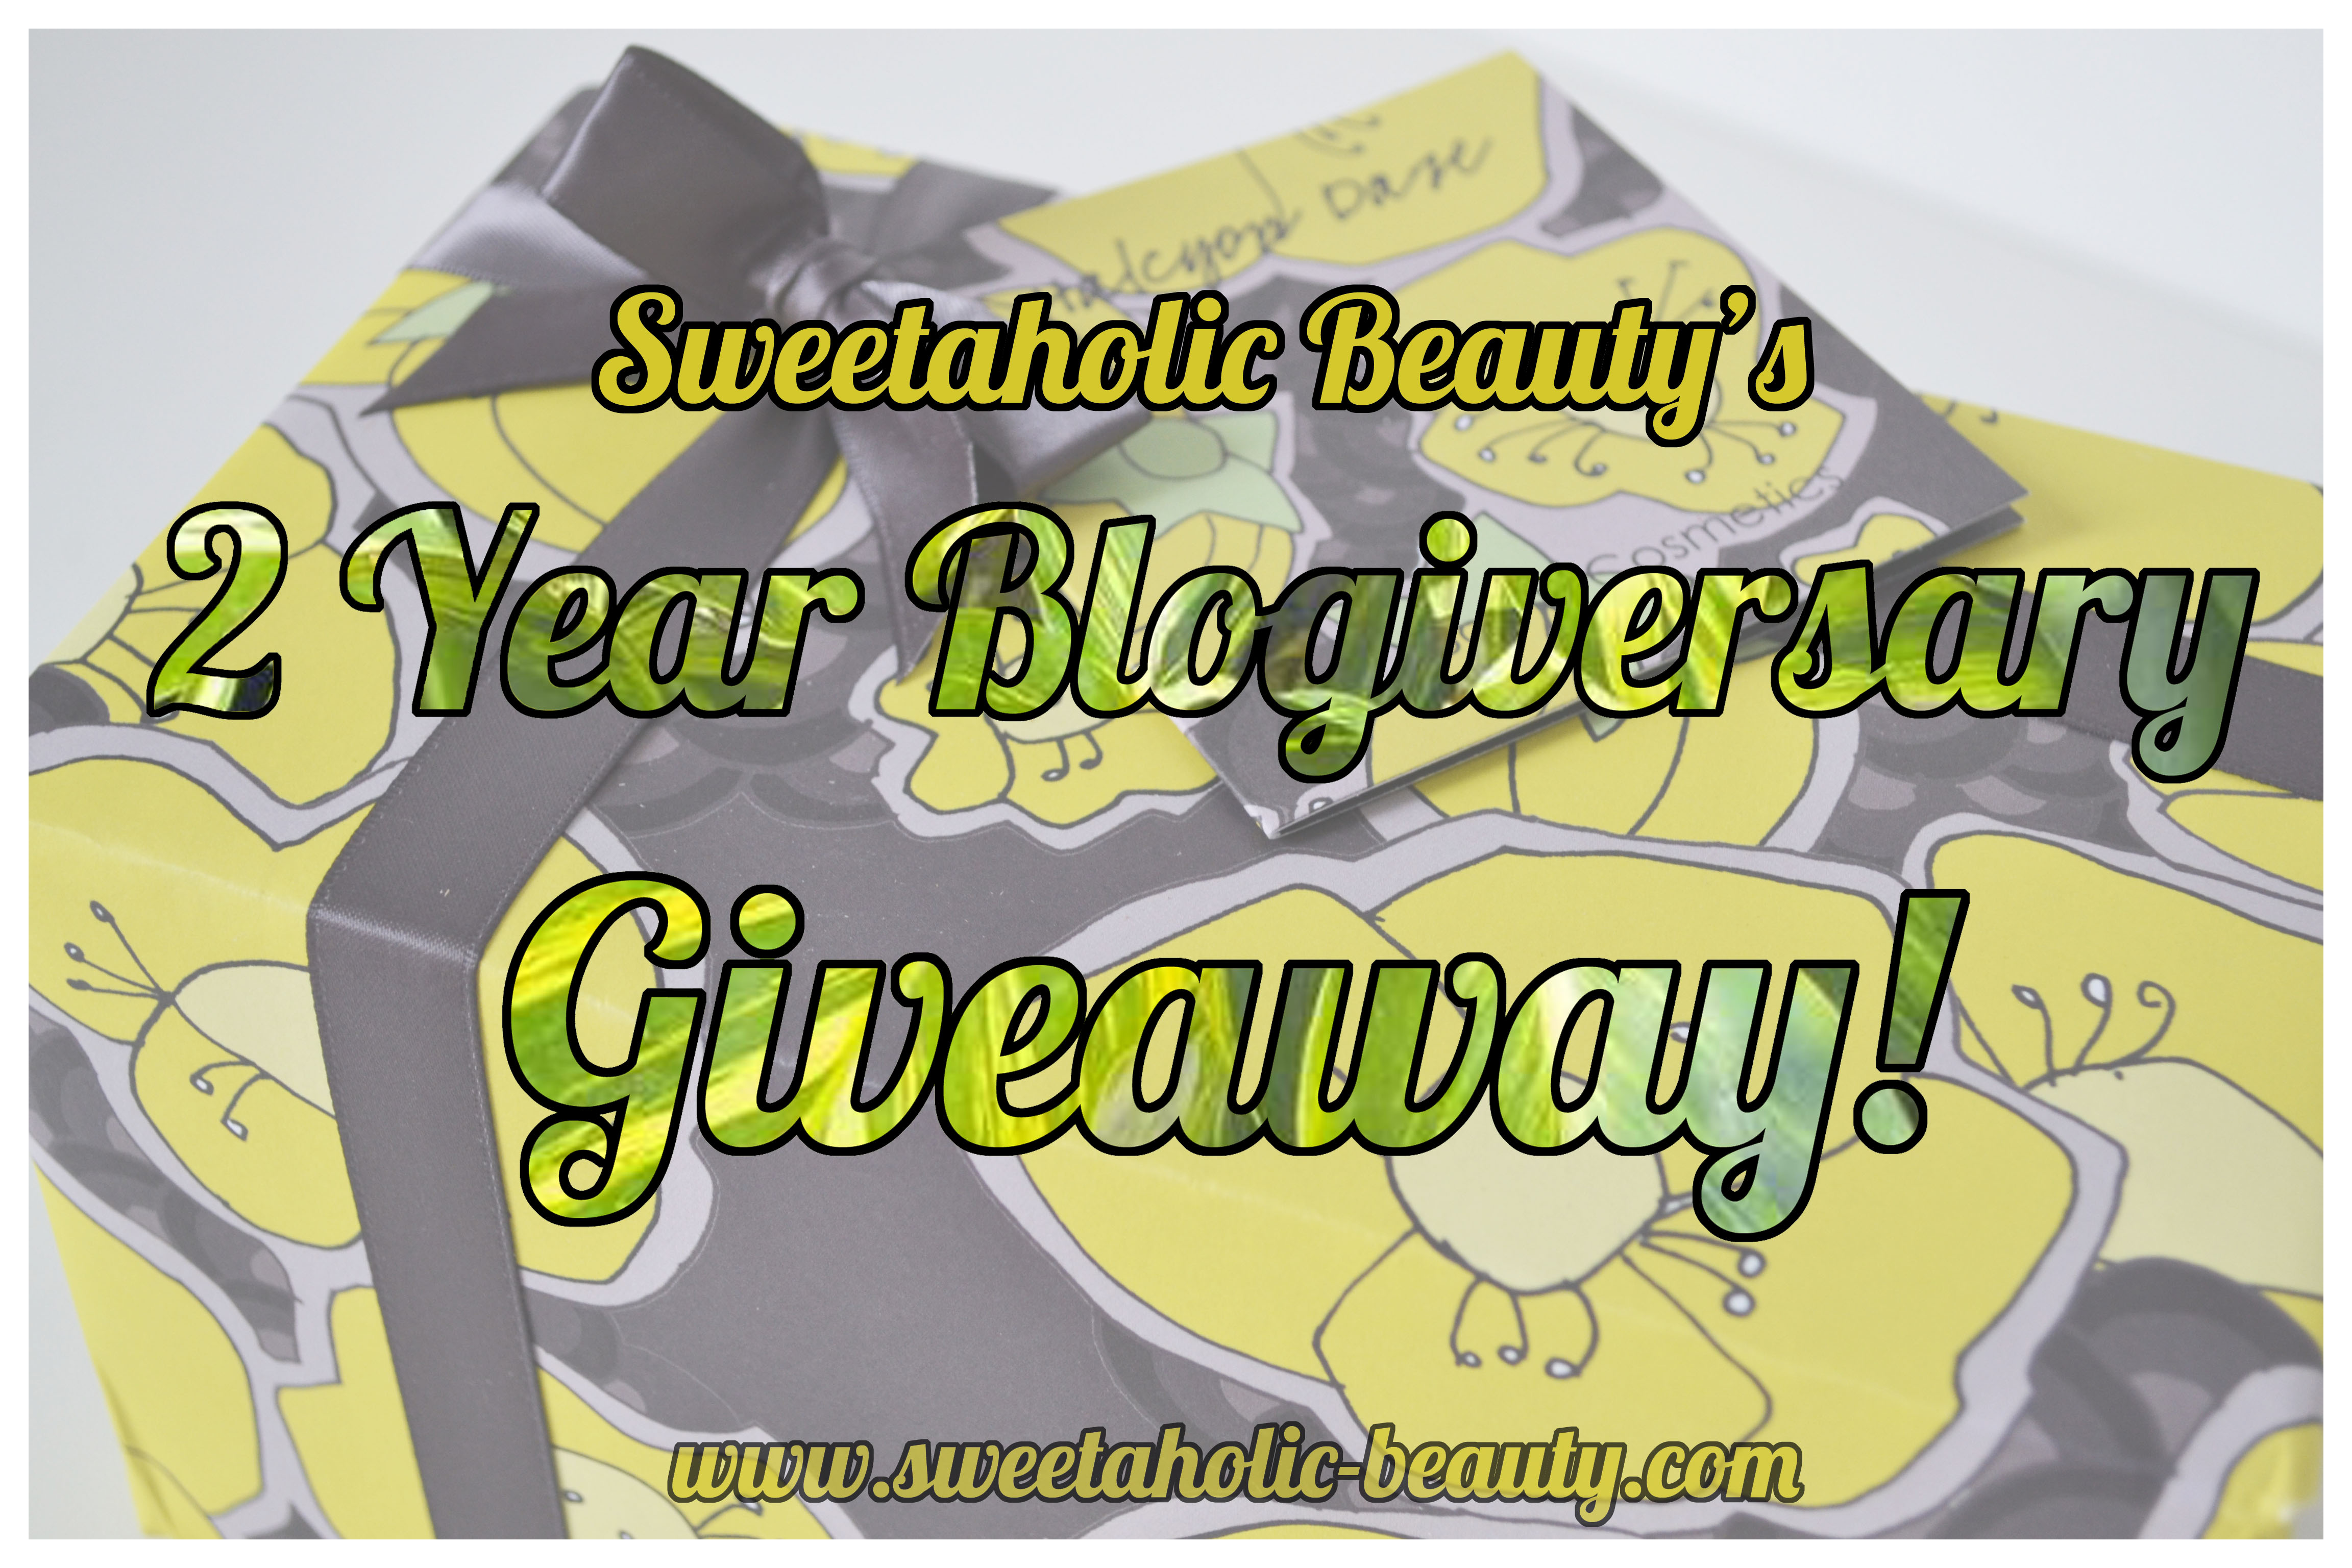 Sweetaholic Beauty's Giveaway!